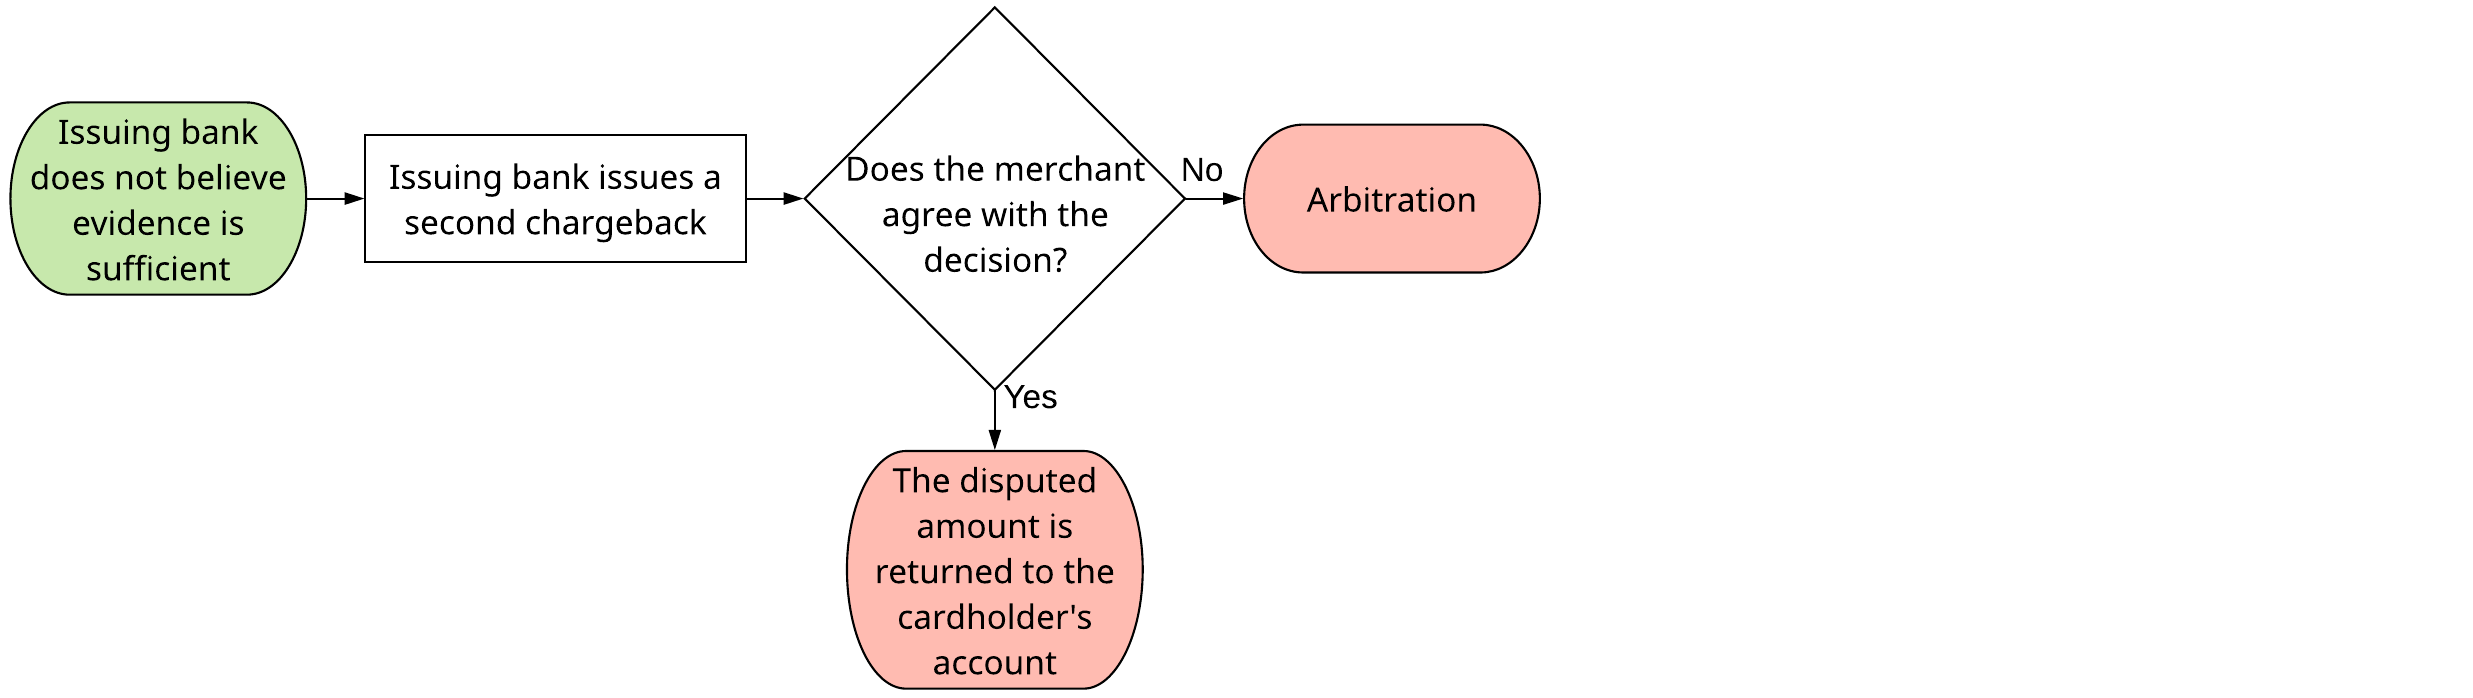 A flowchart that shows the stages of a second chargeback.